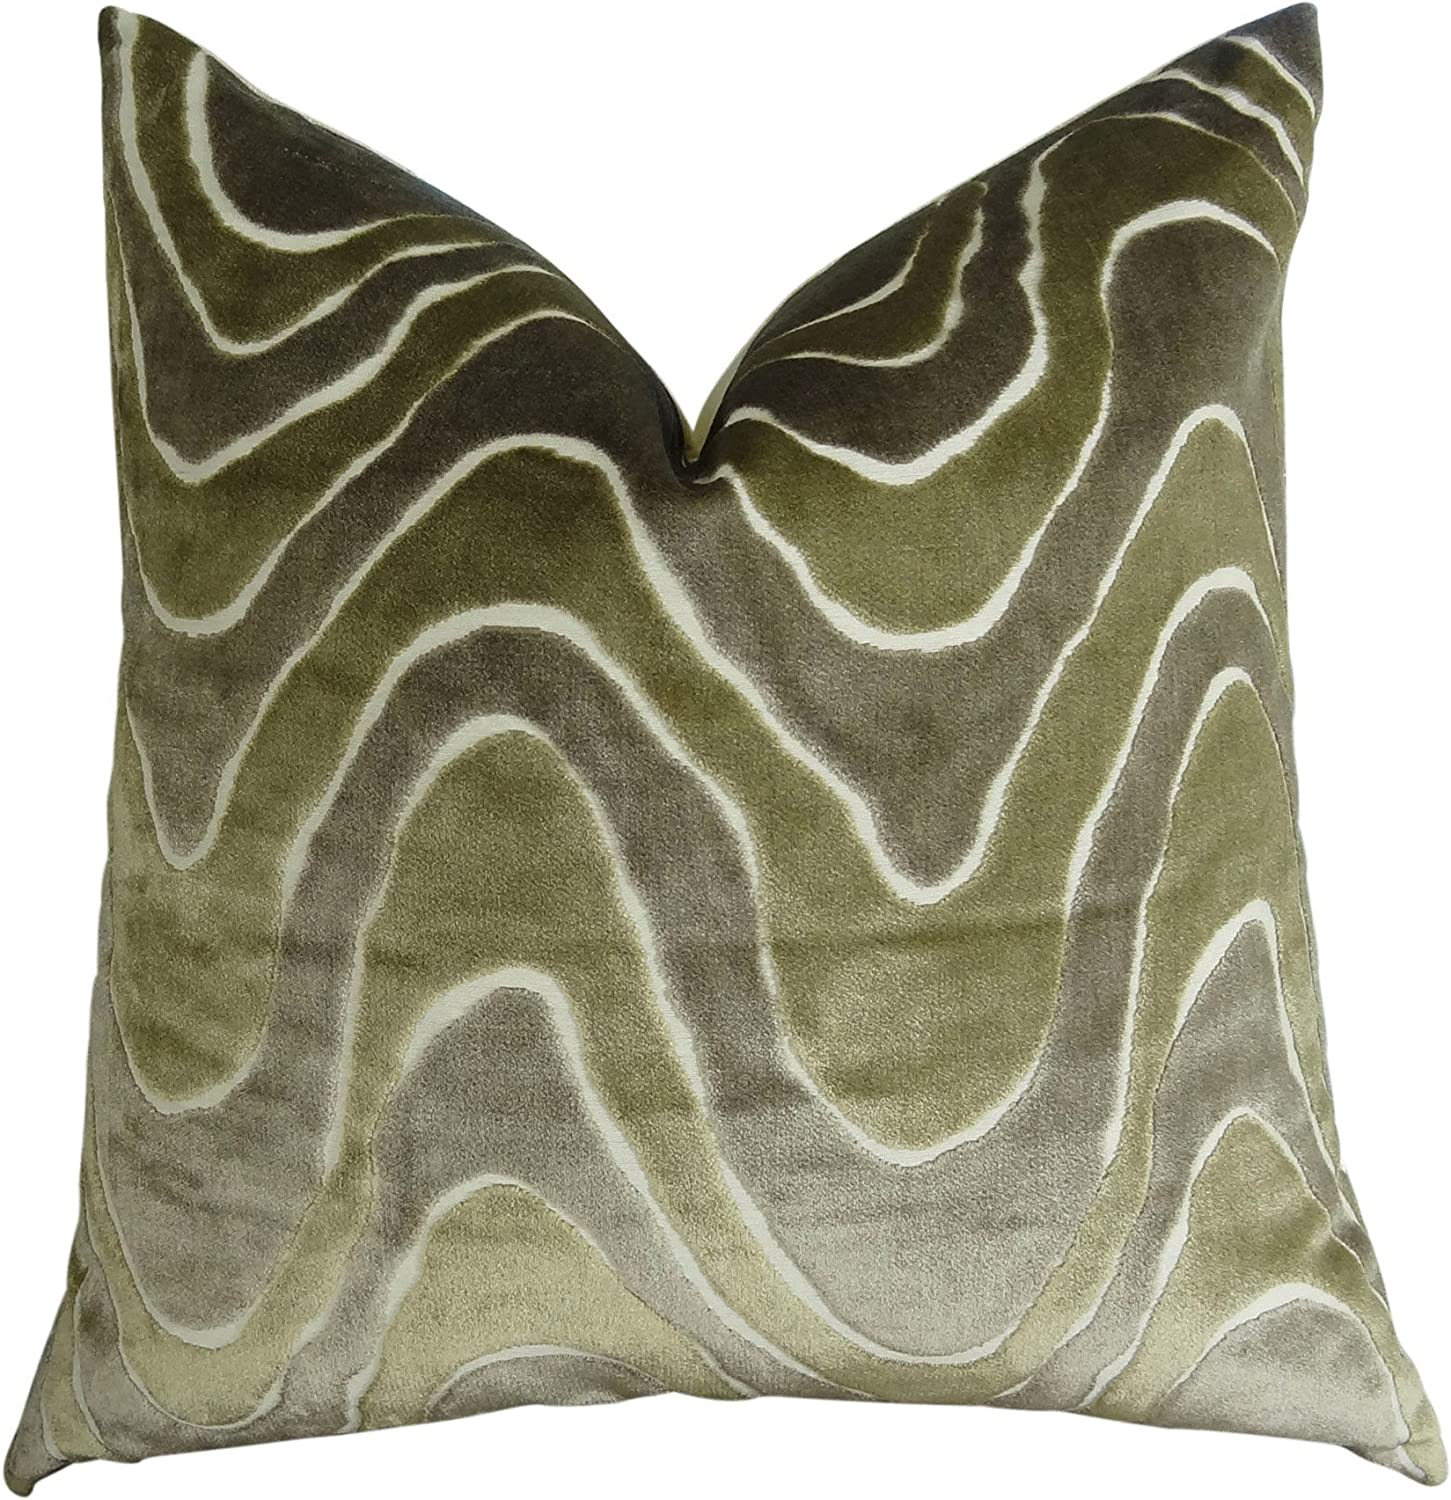 Graphic Taupe Ivory Greige Luxury Sofa Pillow  11397